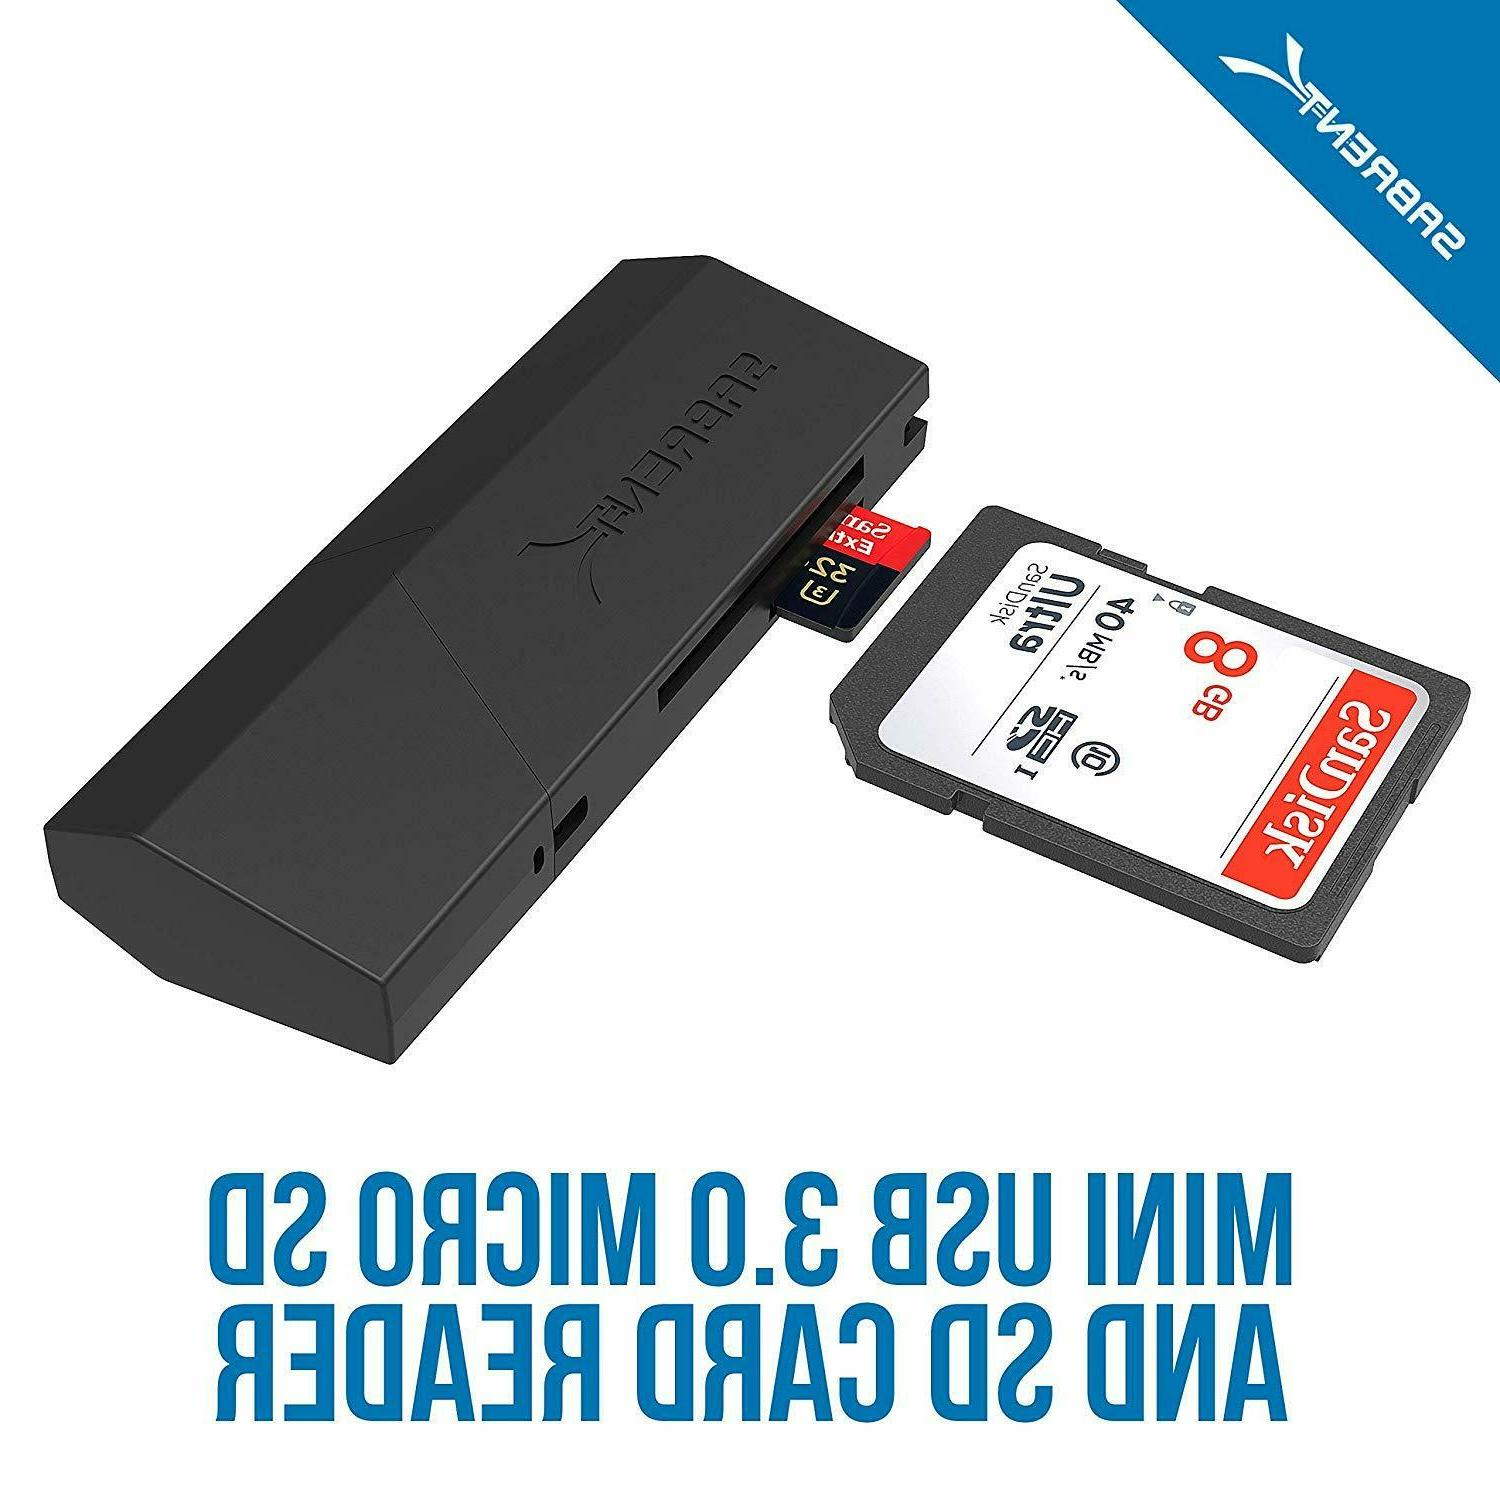 SuperSpeed Flash Memory Card Reader for